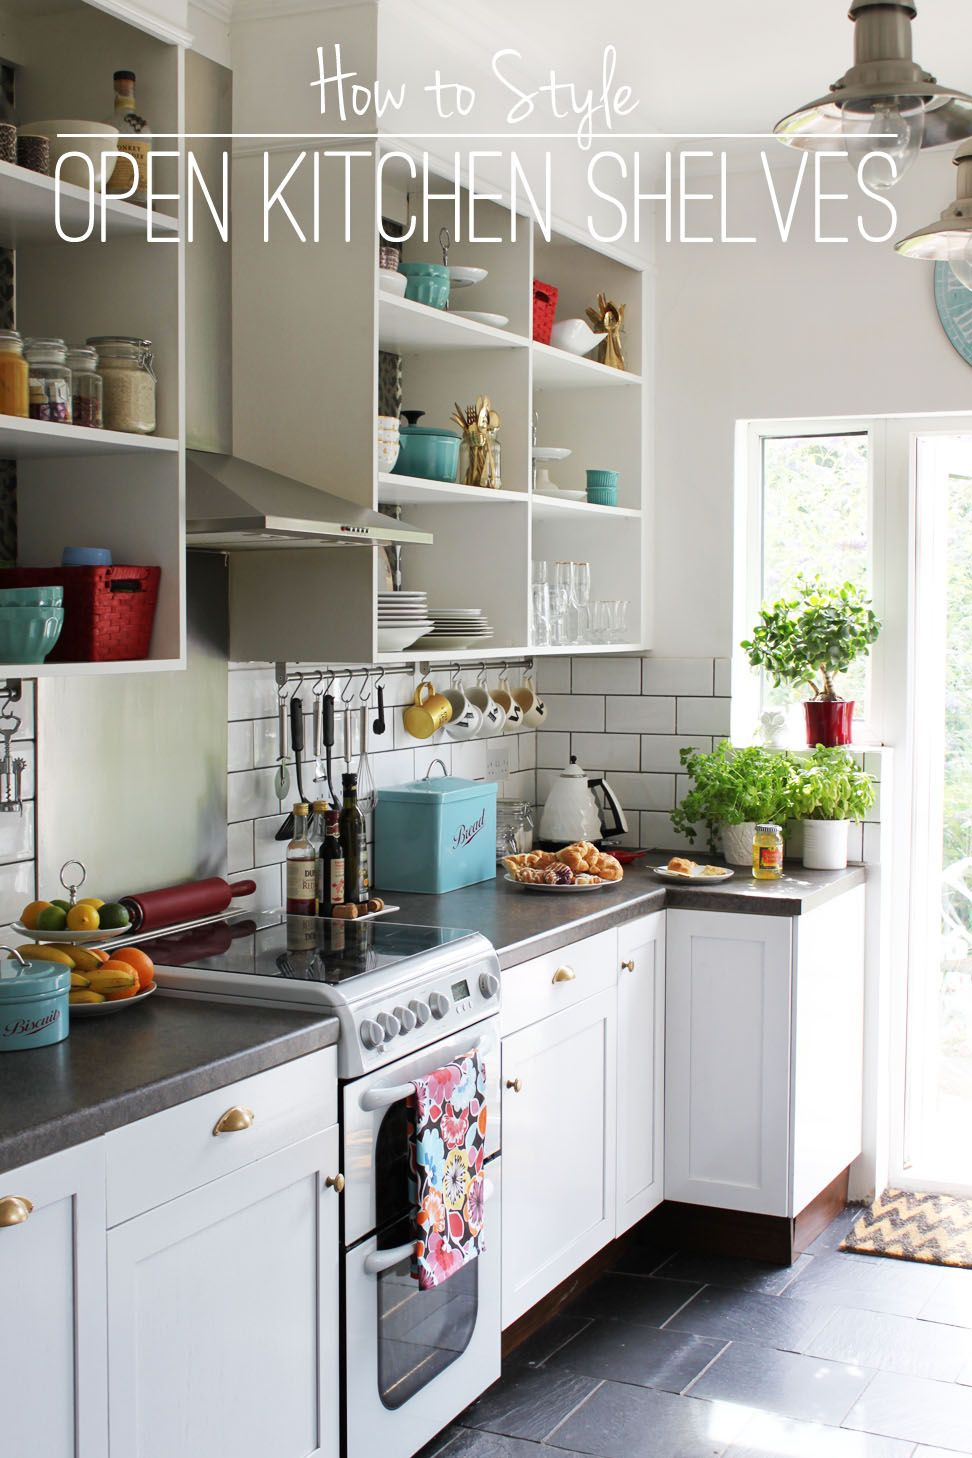 open kitchen cabinets Open Kitchen Shelves Yes Makes you wanna keep them clean and organized